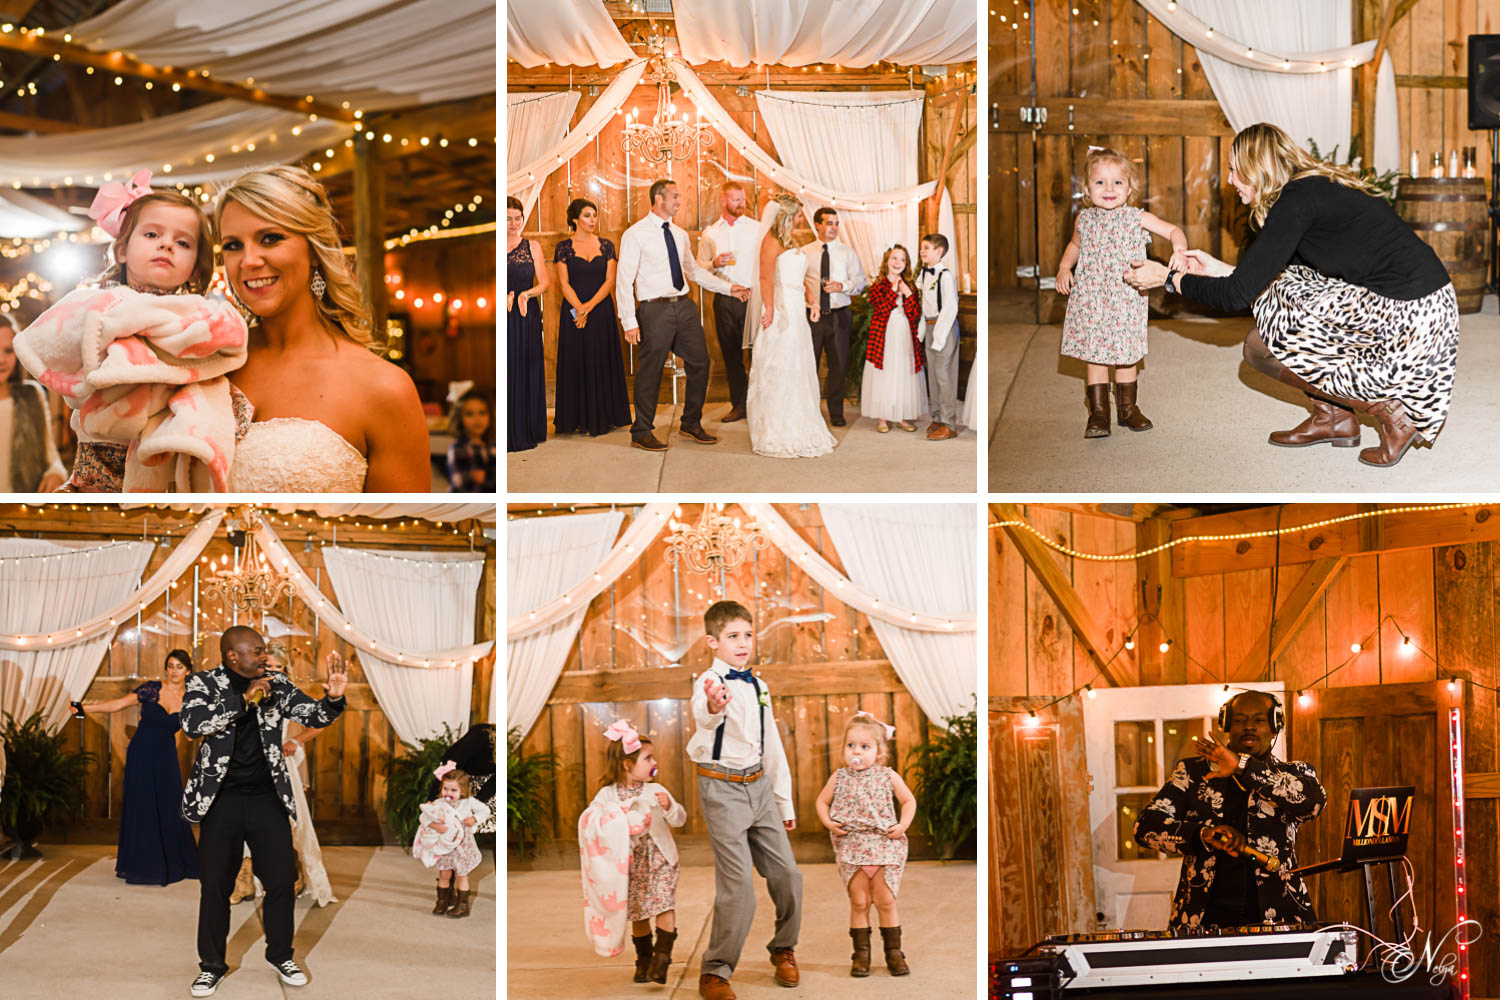 reception fun on the dance floor at the barn at Drewia Hill in Sale creek TN